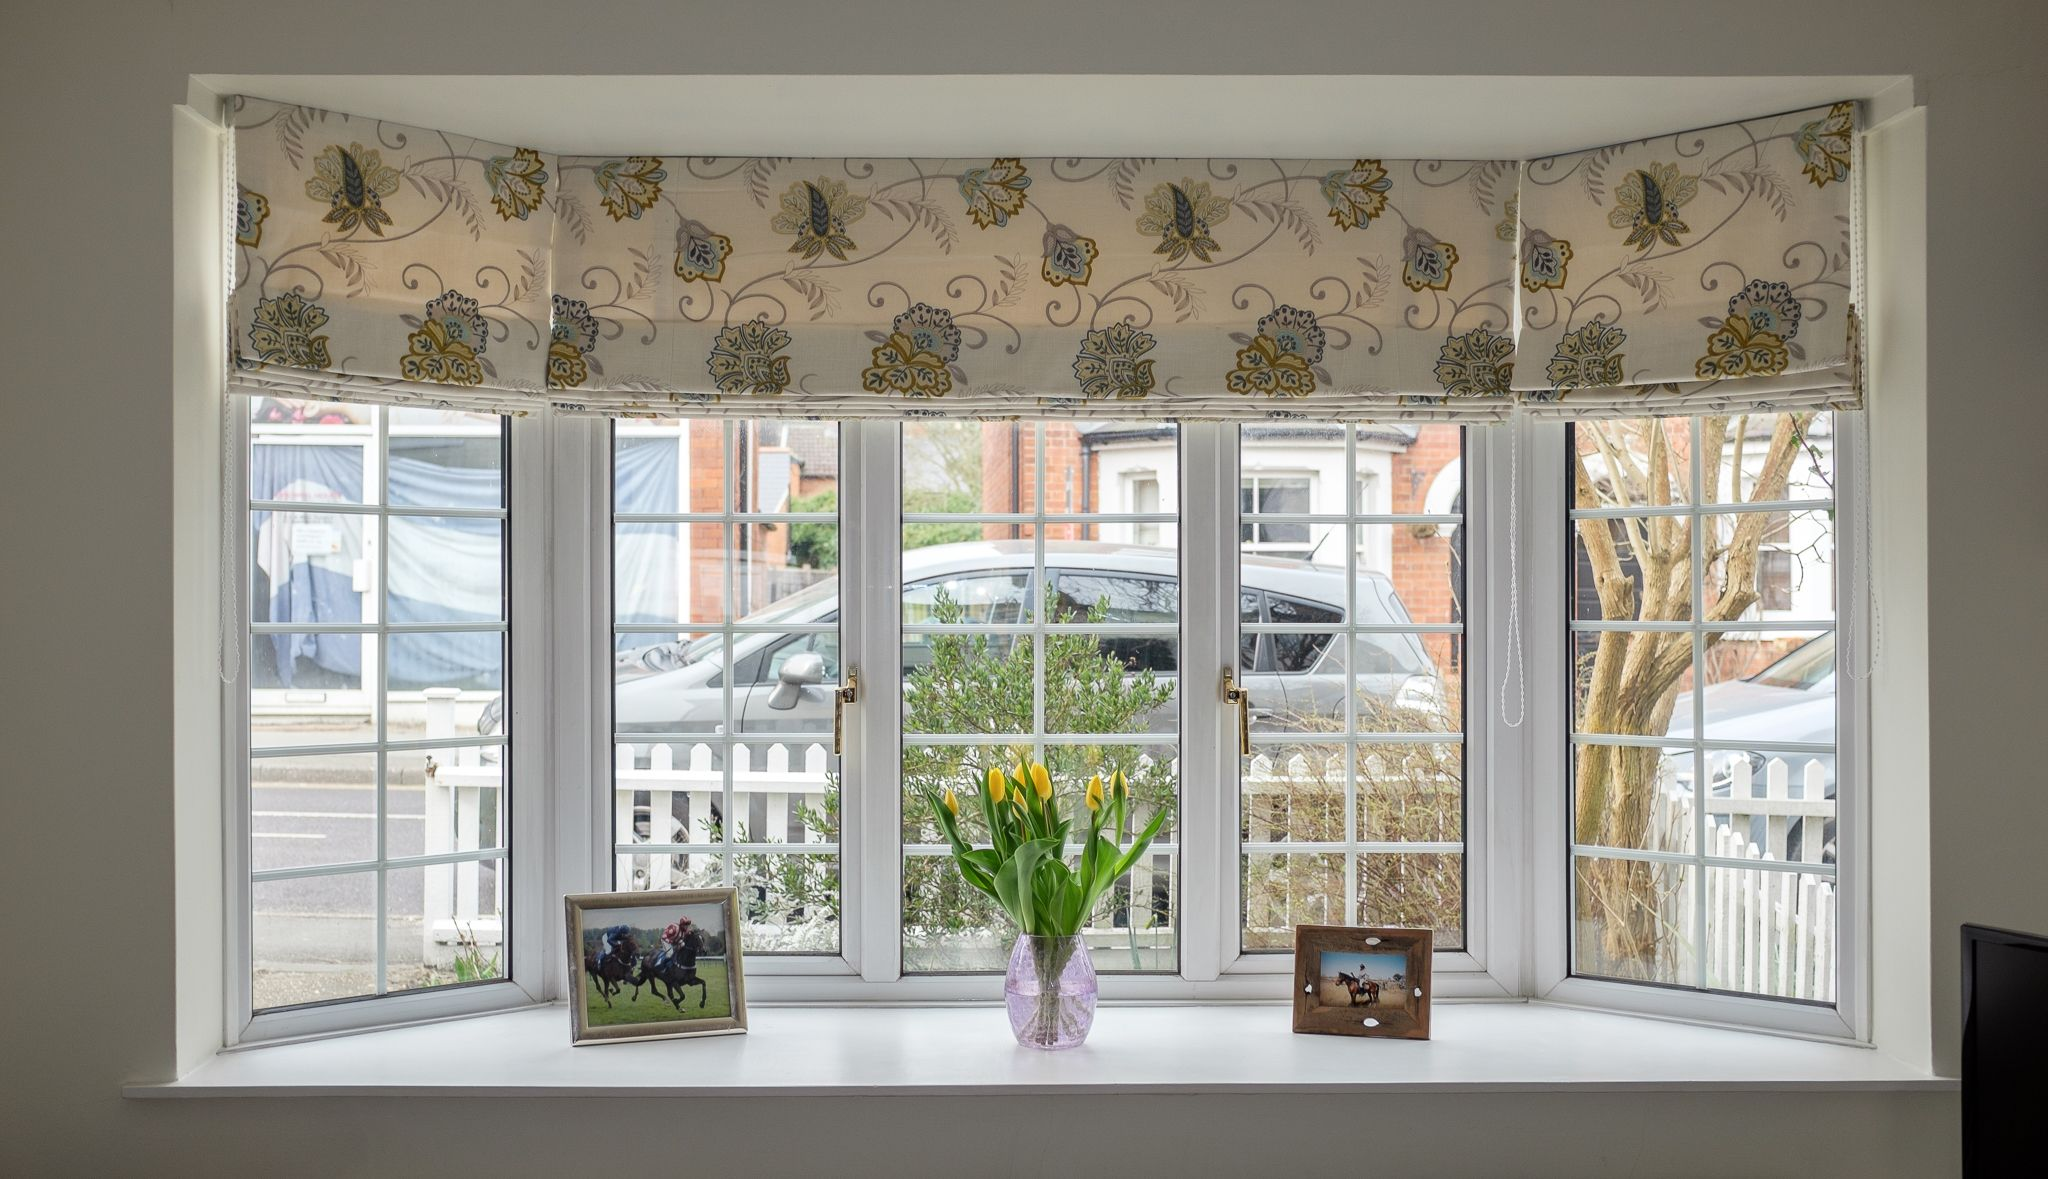 Roman Blinds Can Be The Perfect Solution To Dress A Bay